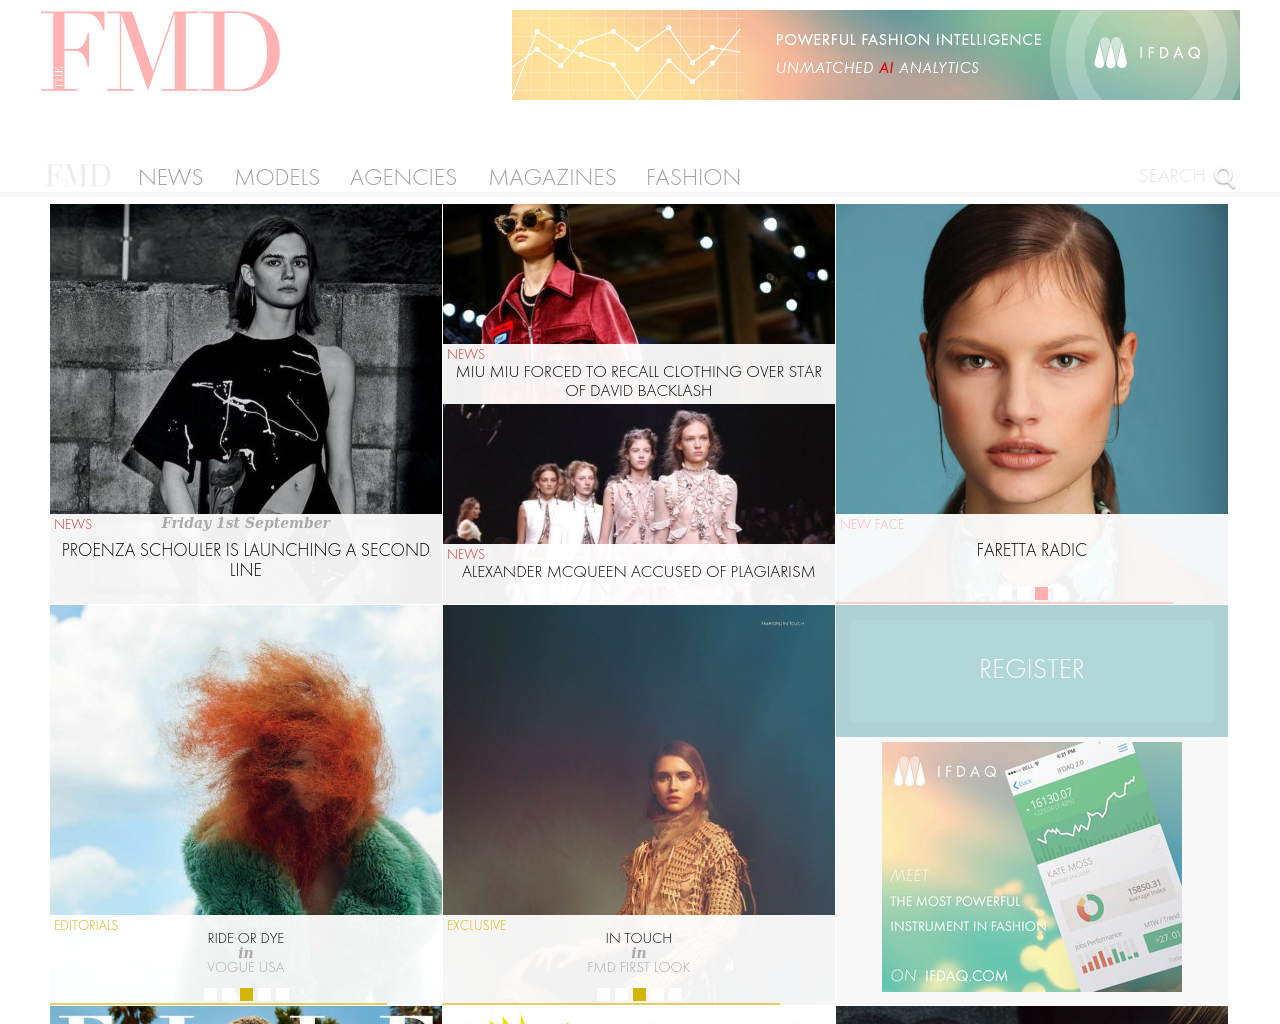 FMD---The-Fashion-Model-Directory-Advertising-Reviews-Pricing